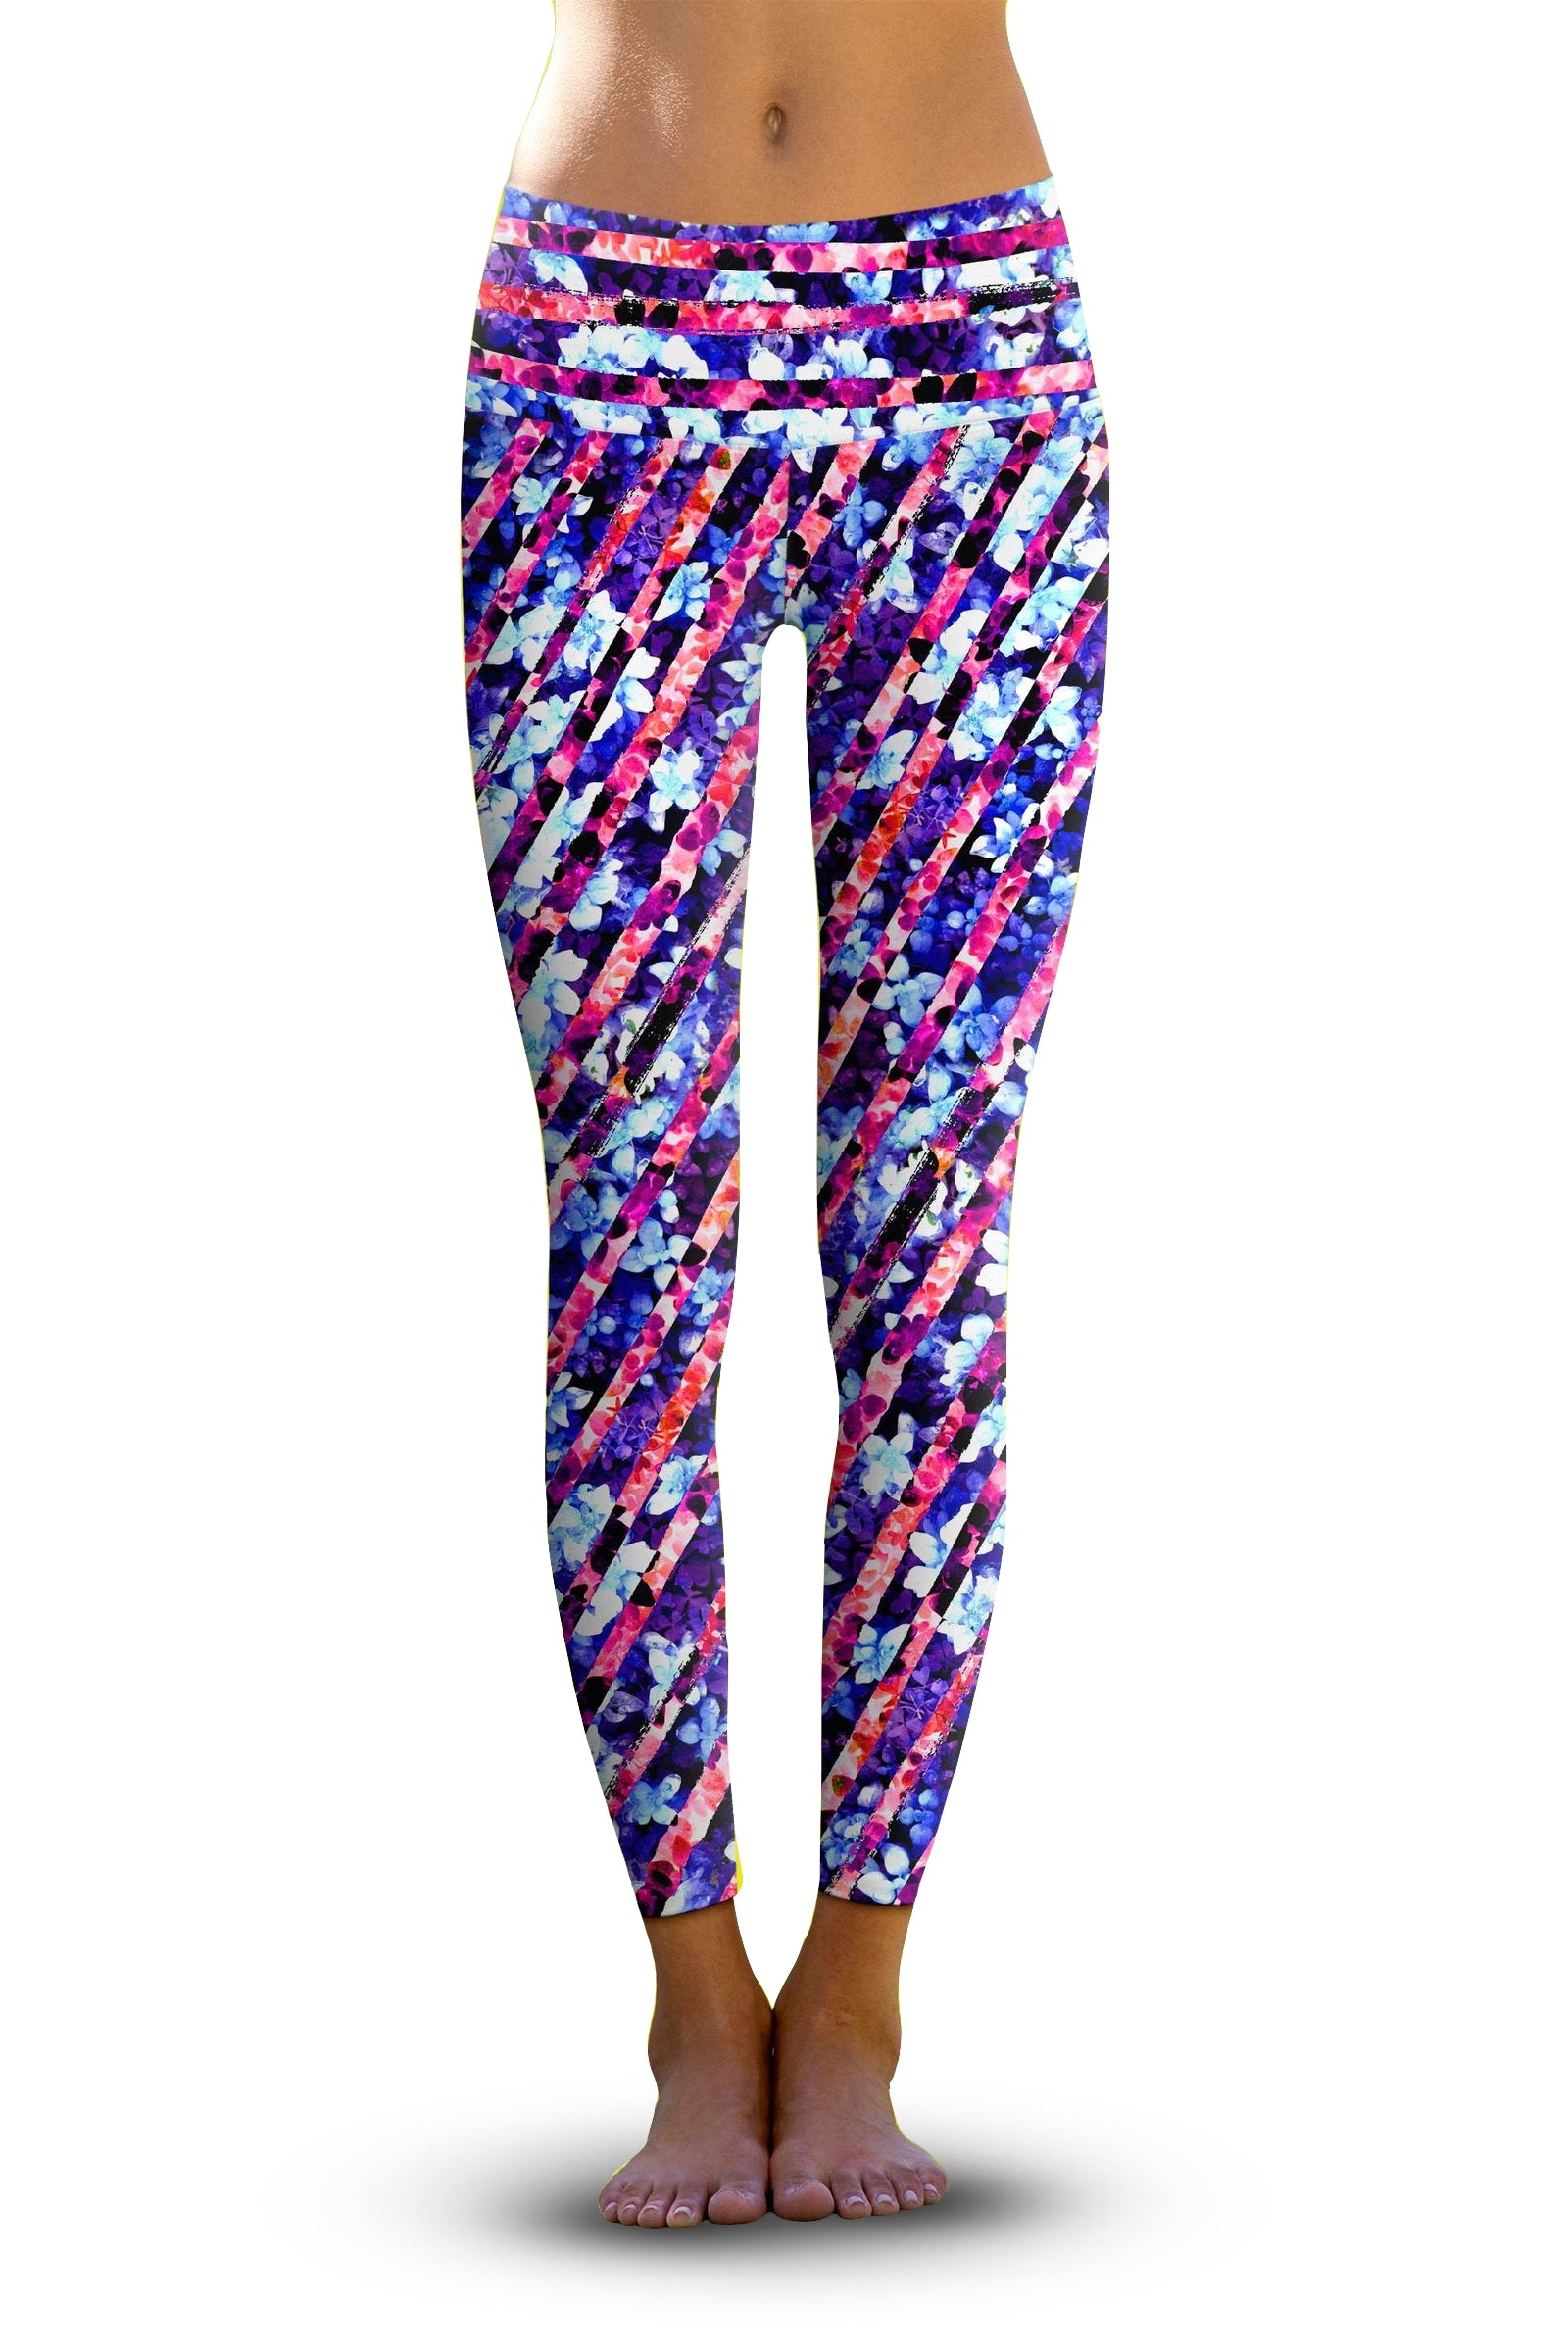 2nd Gen. Botanical Remix, Eco-Friendly Active Performance Leggings